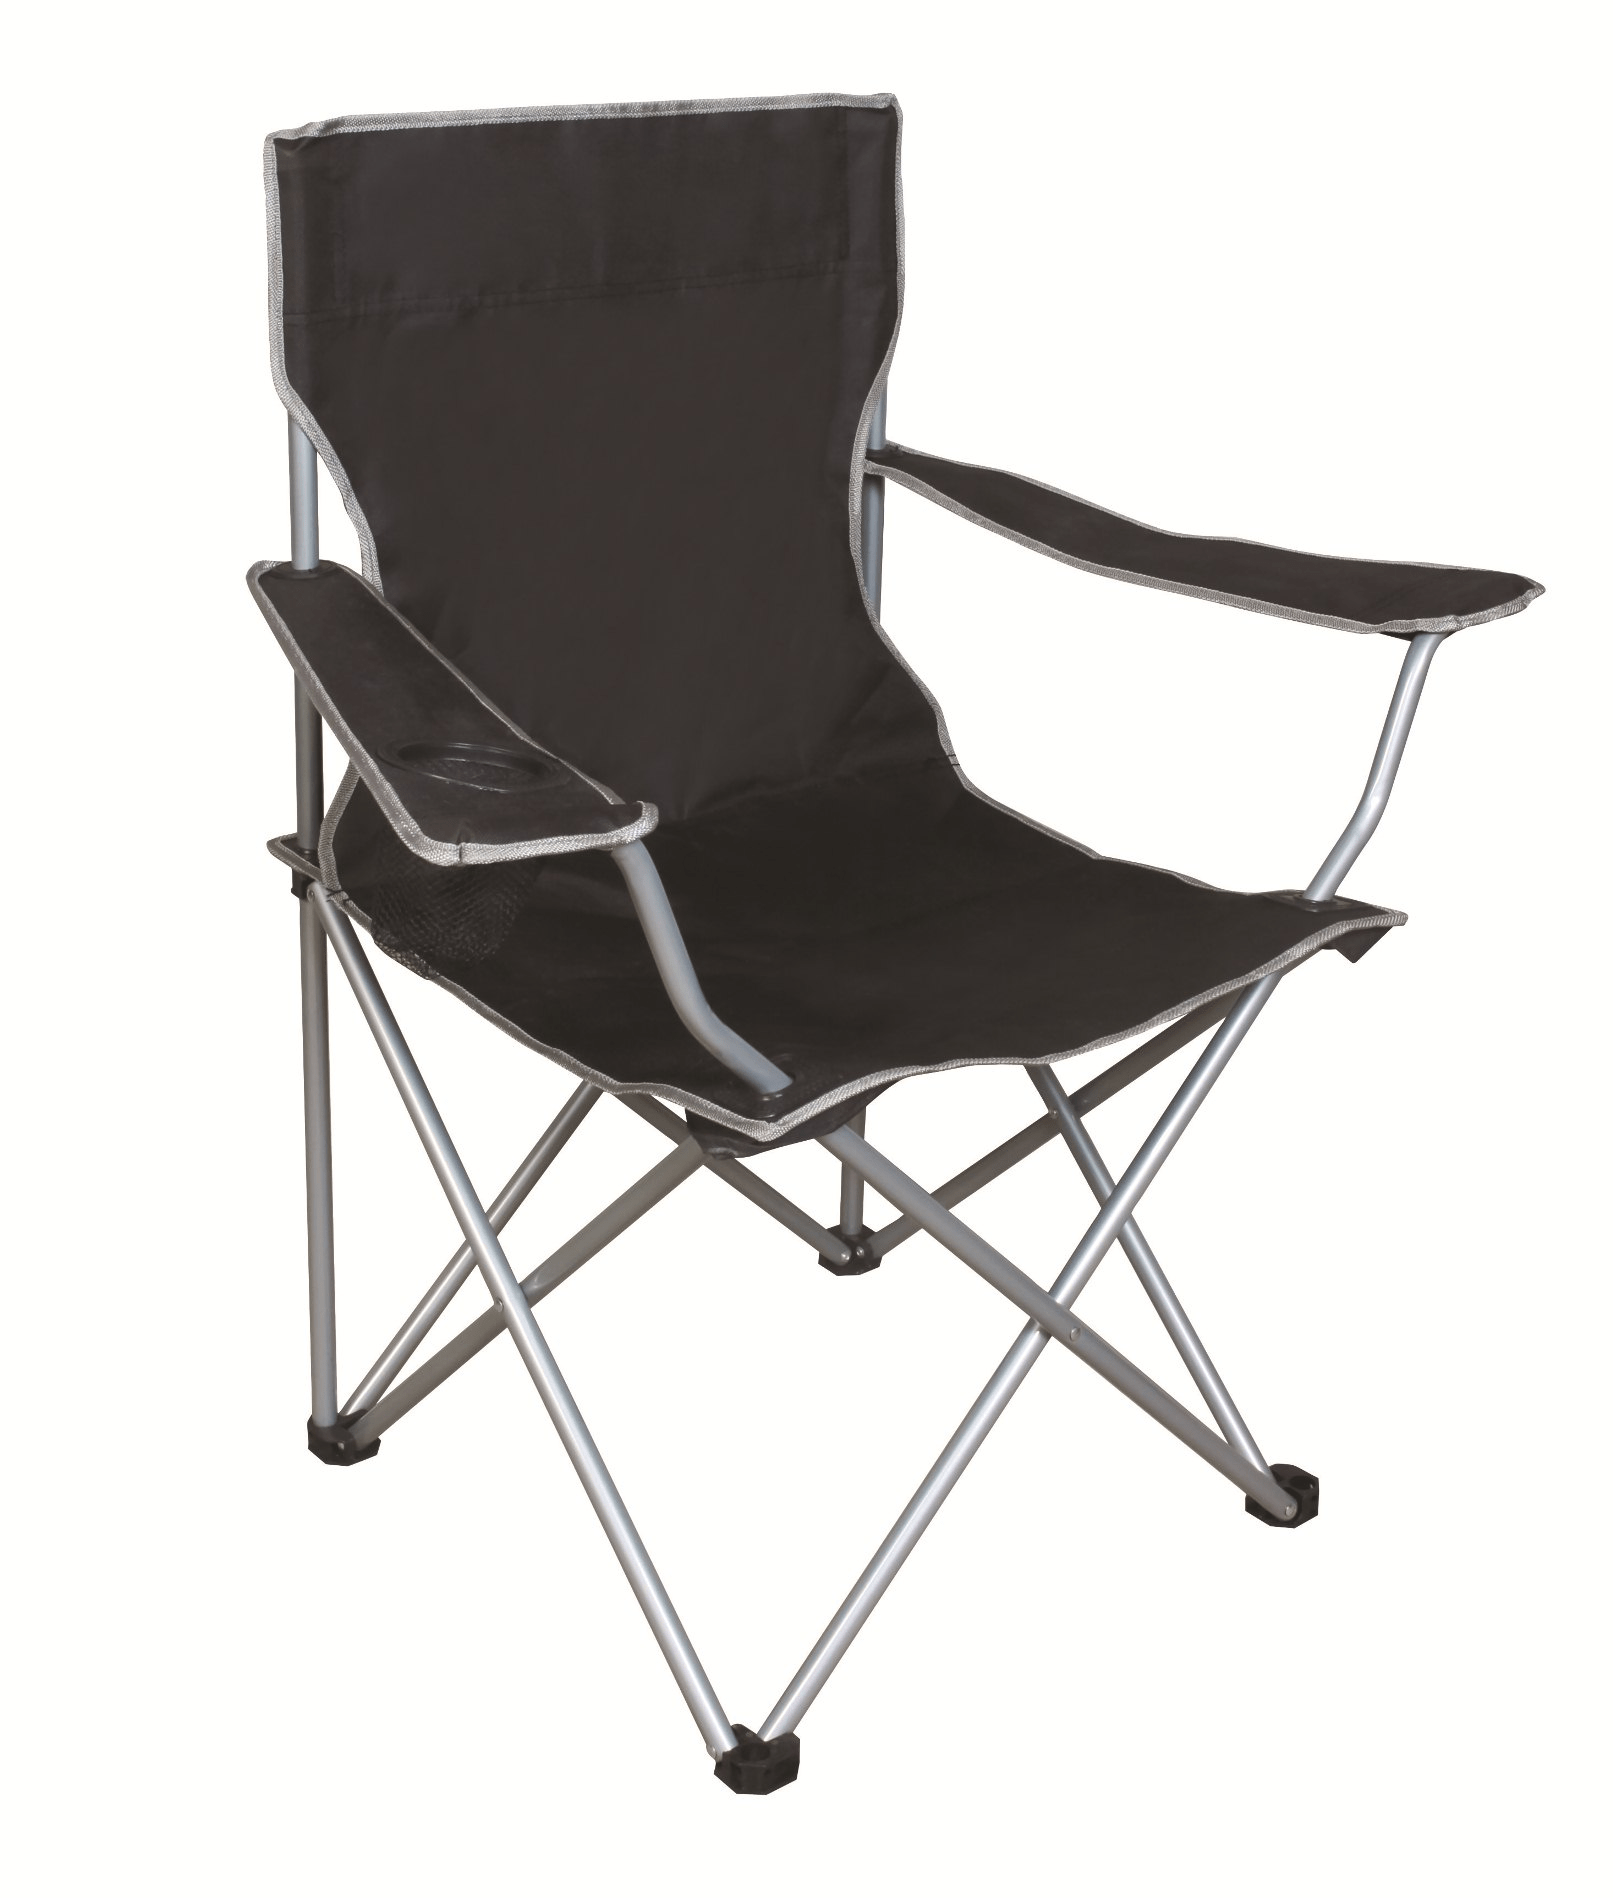 outdoor sports chairs chair cover hire milton keynes northwest territory lightweight black